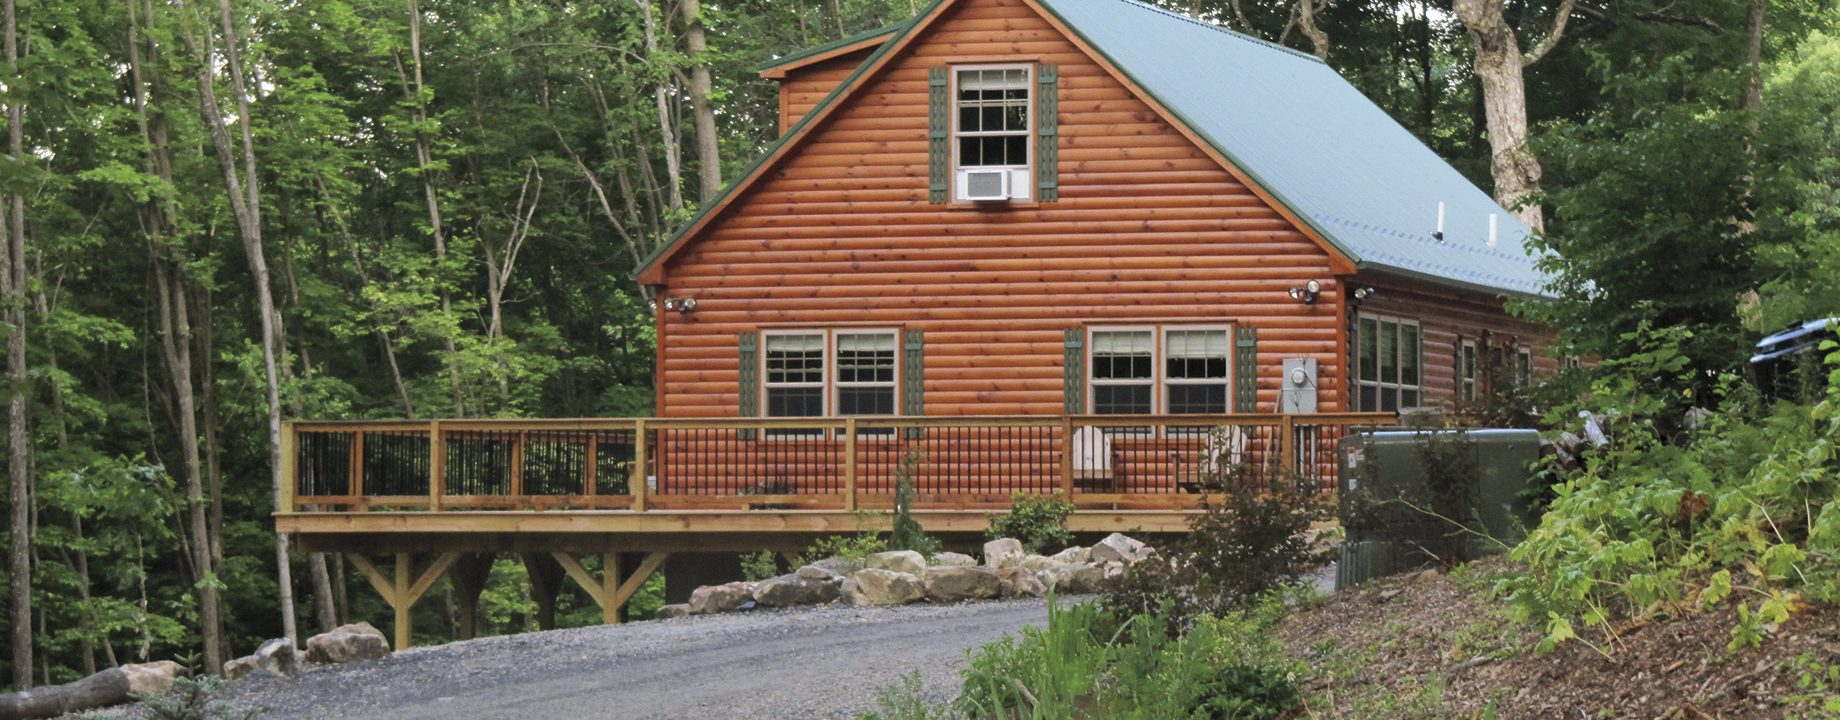 mountaineer cabin | 2 story cabin | large log homes | zook cabins